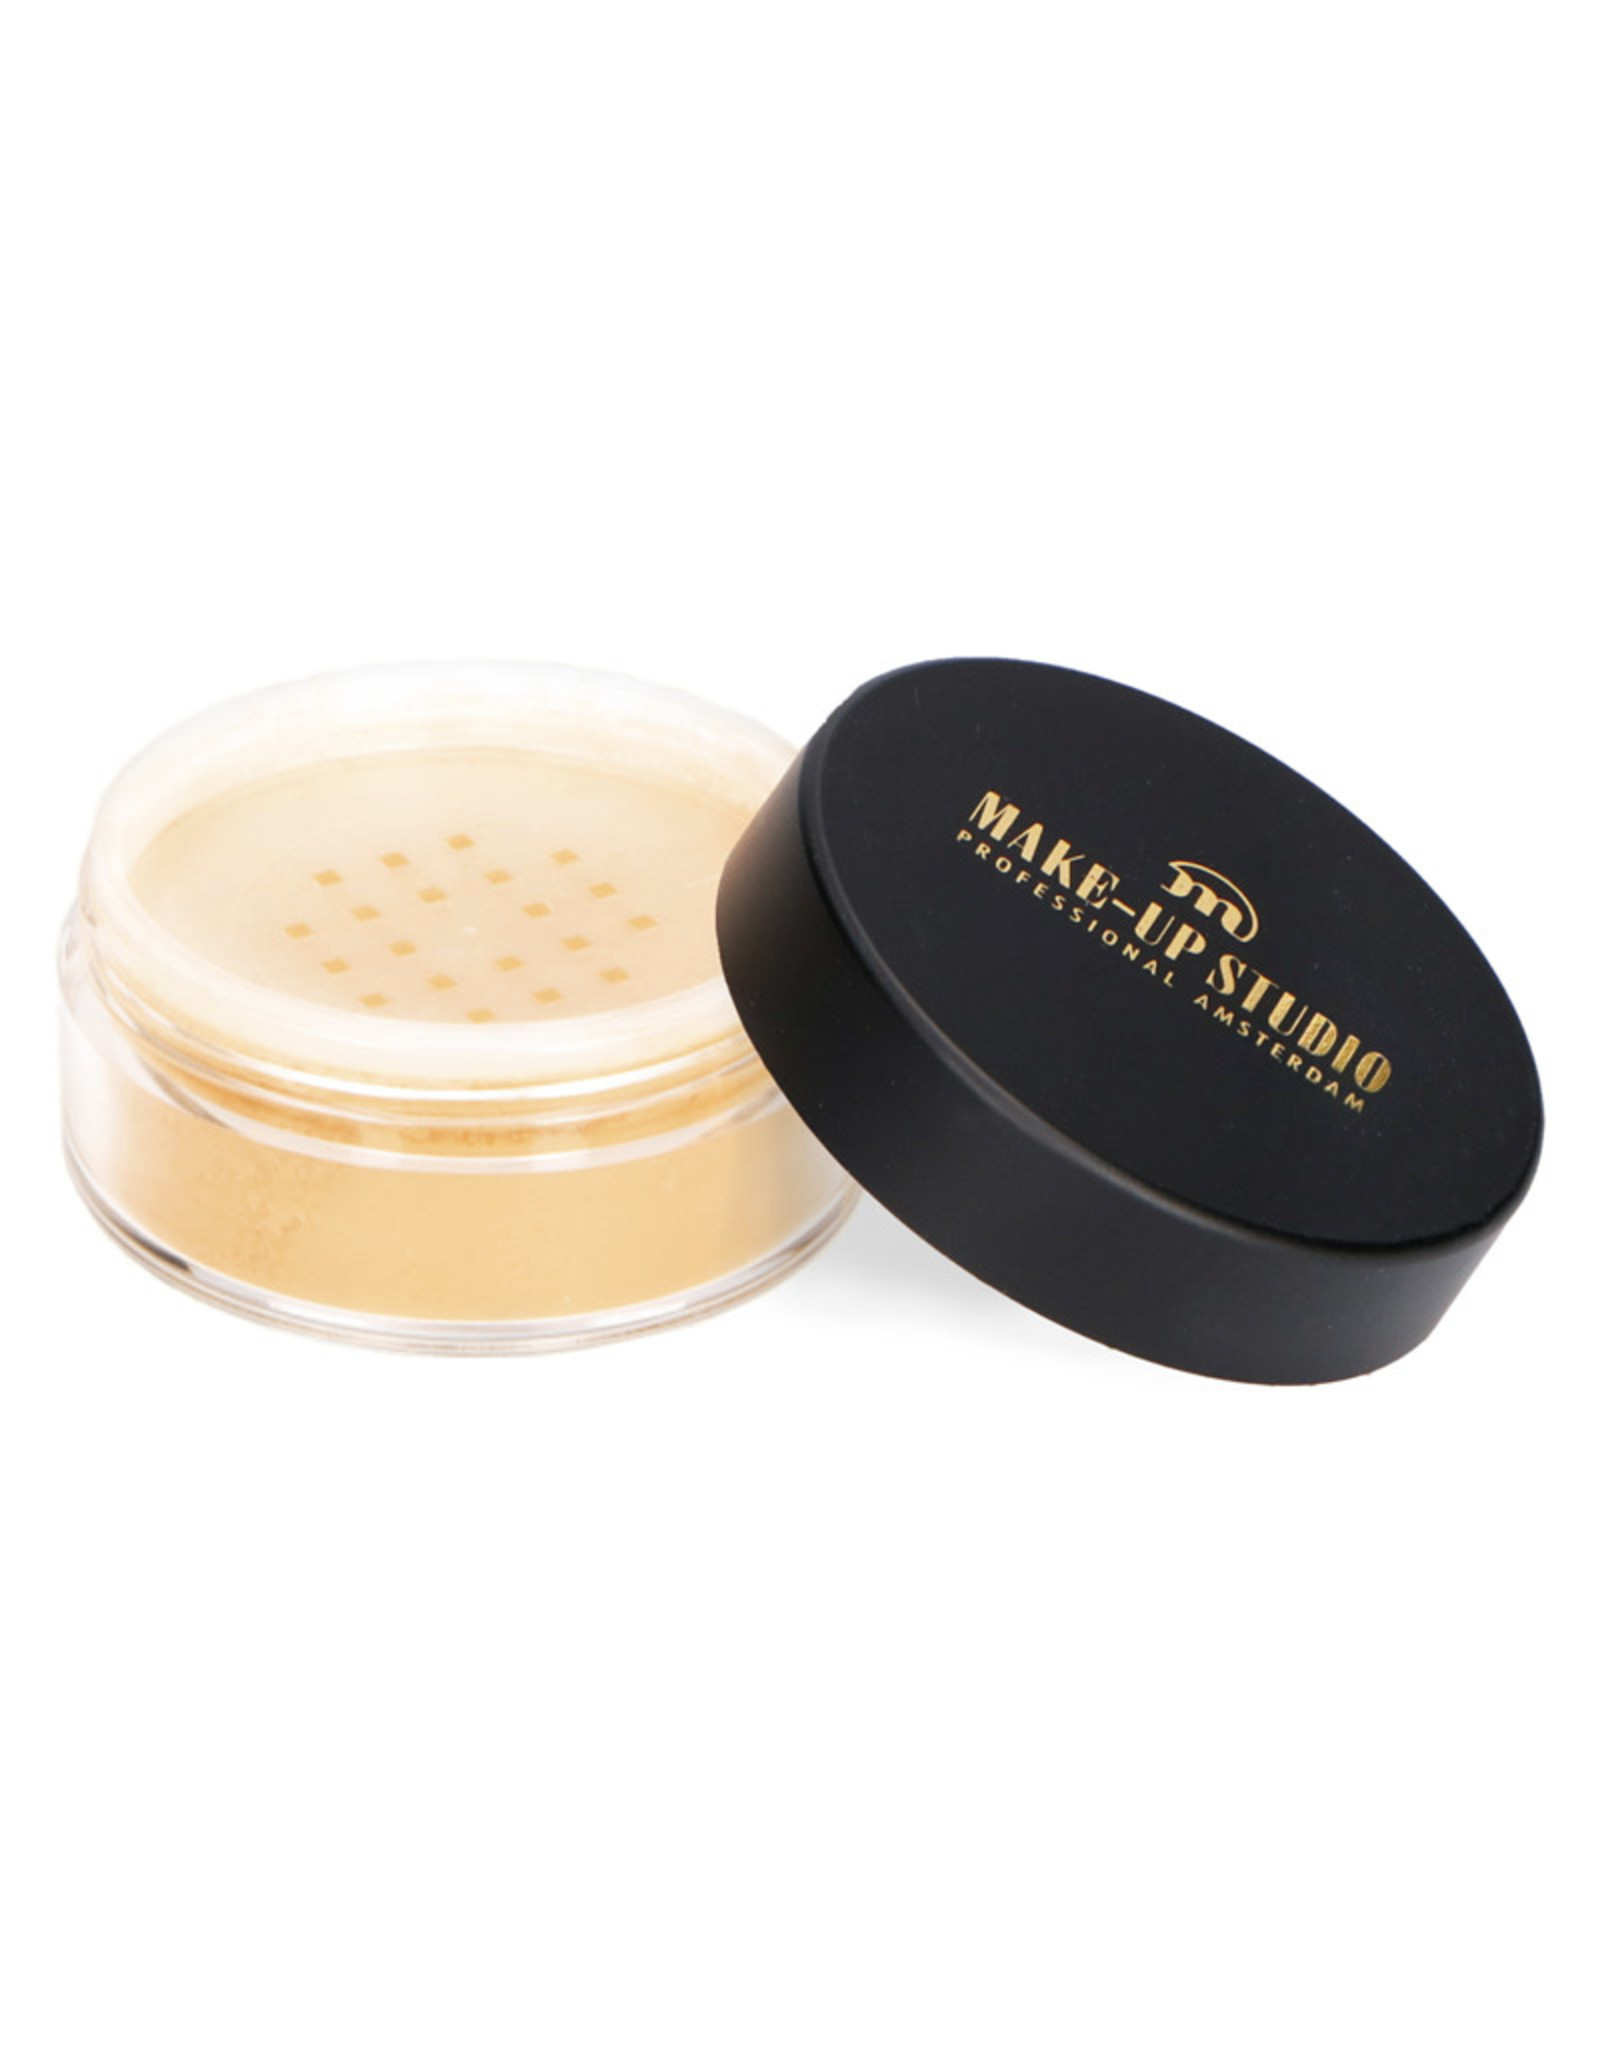 MAKE-UP STUDIO TRANSLUCENT POWDER EXTRA FINE BANANA